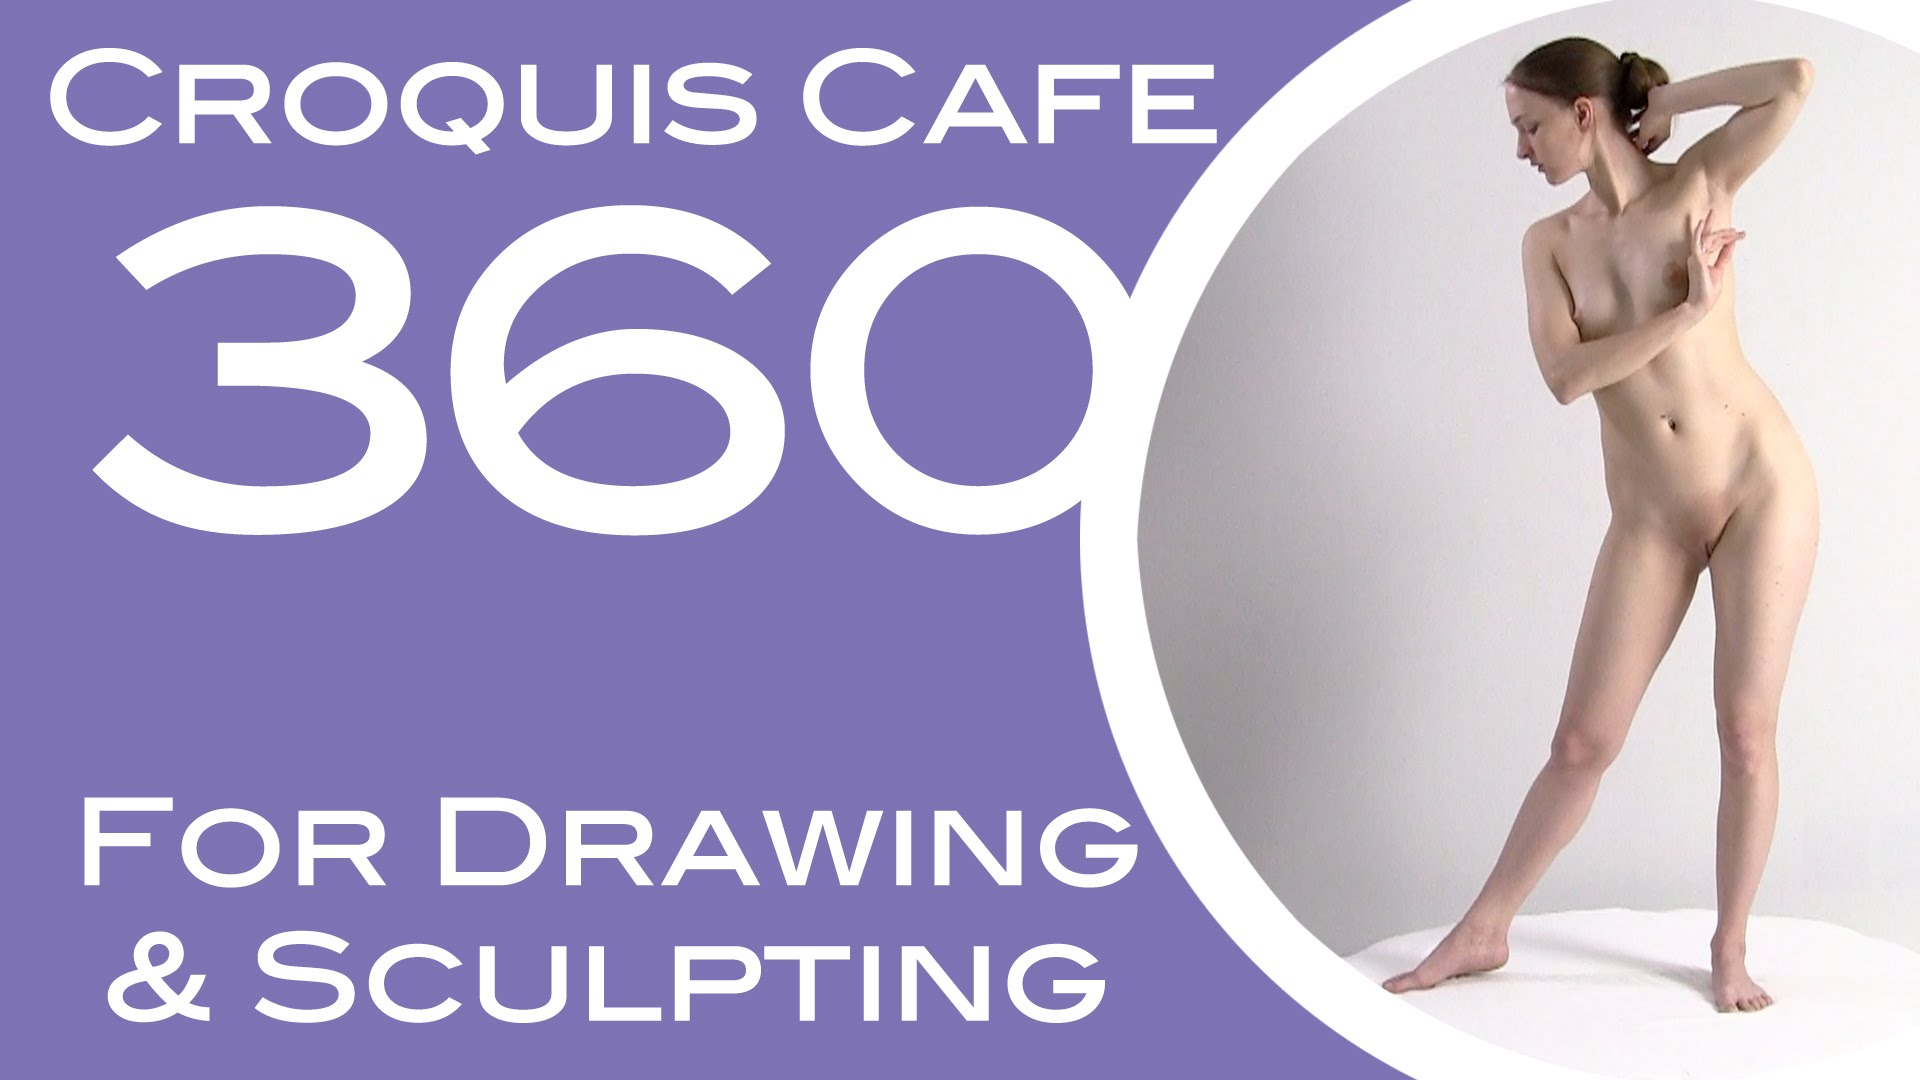 1920x1080 Croquis Cafe 360 Drawing Amp Sculpture Resource, Gabrielle